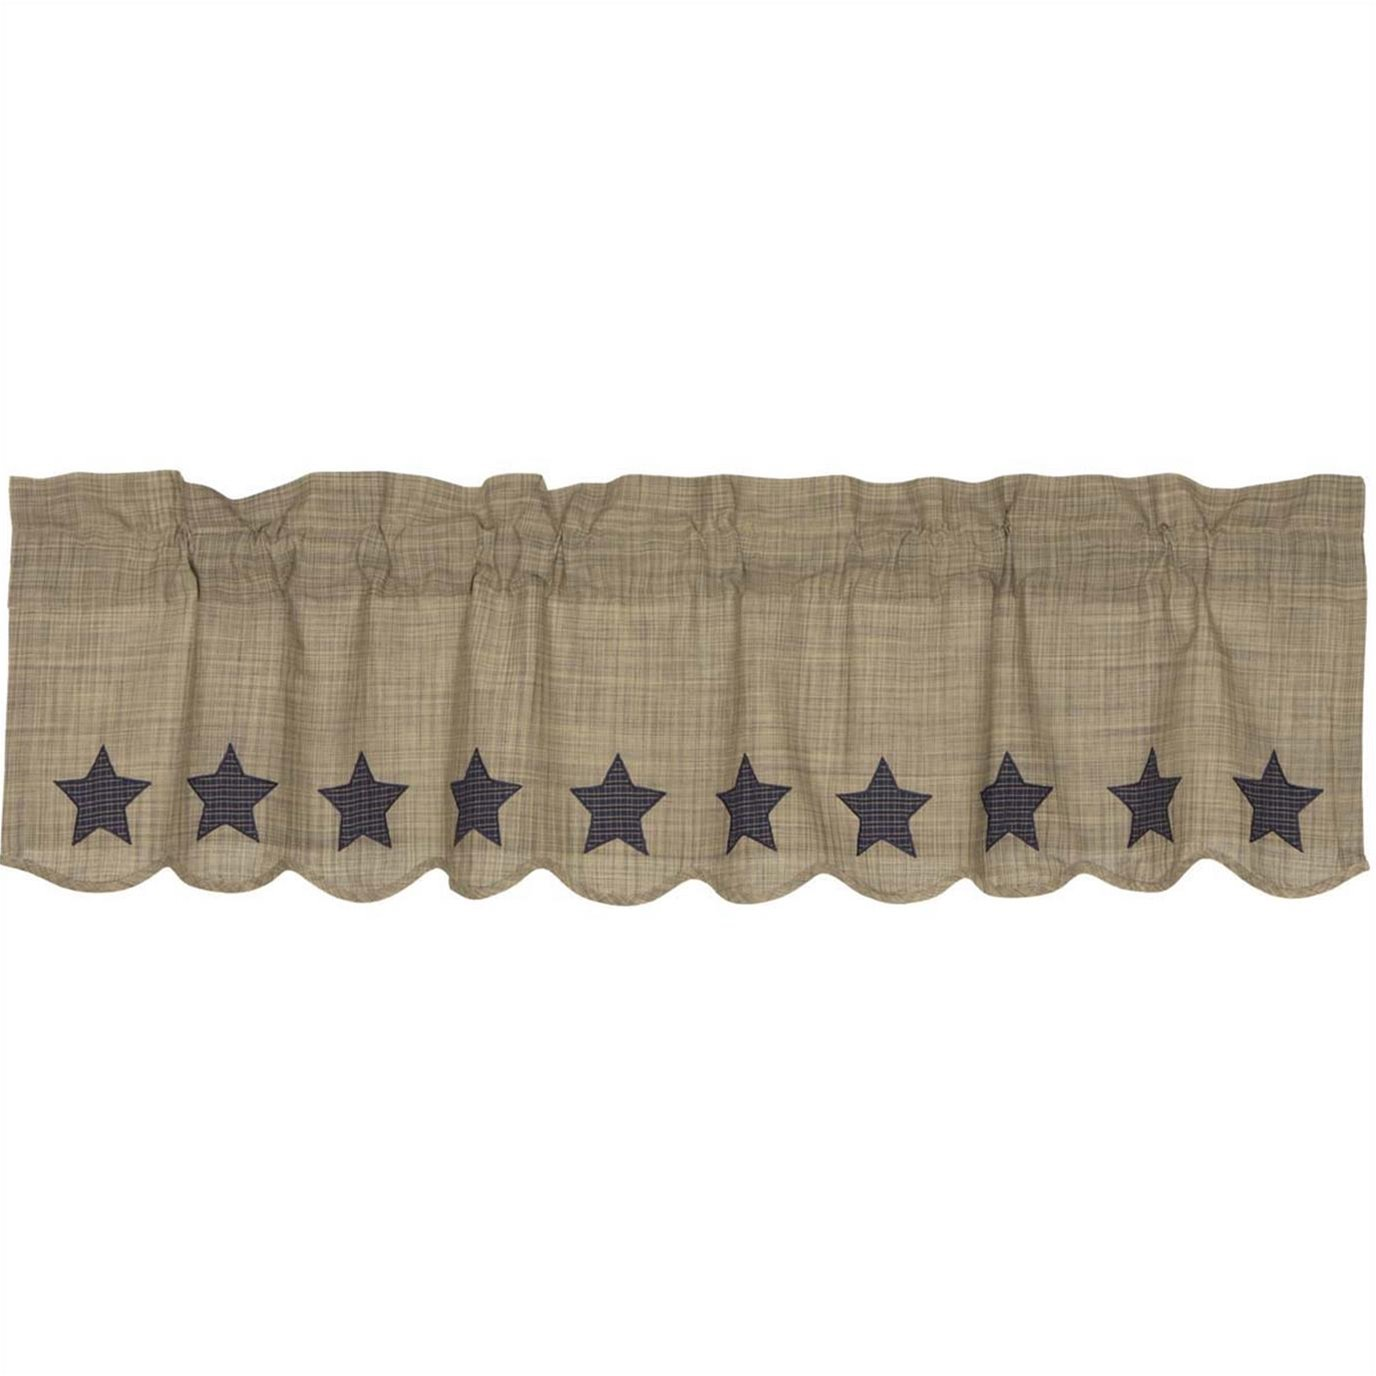 Vincent Scalloped Valance 16x60